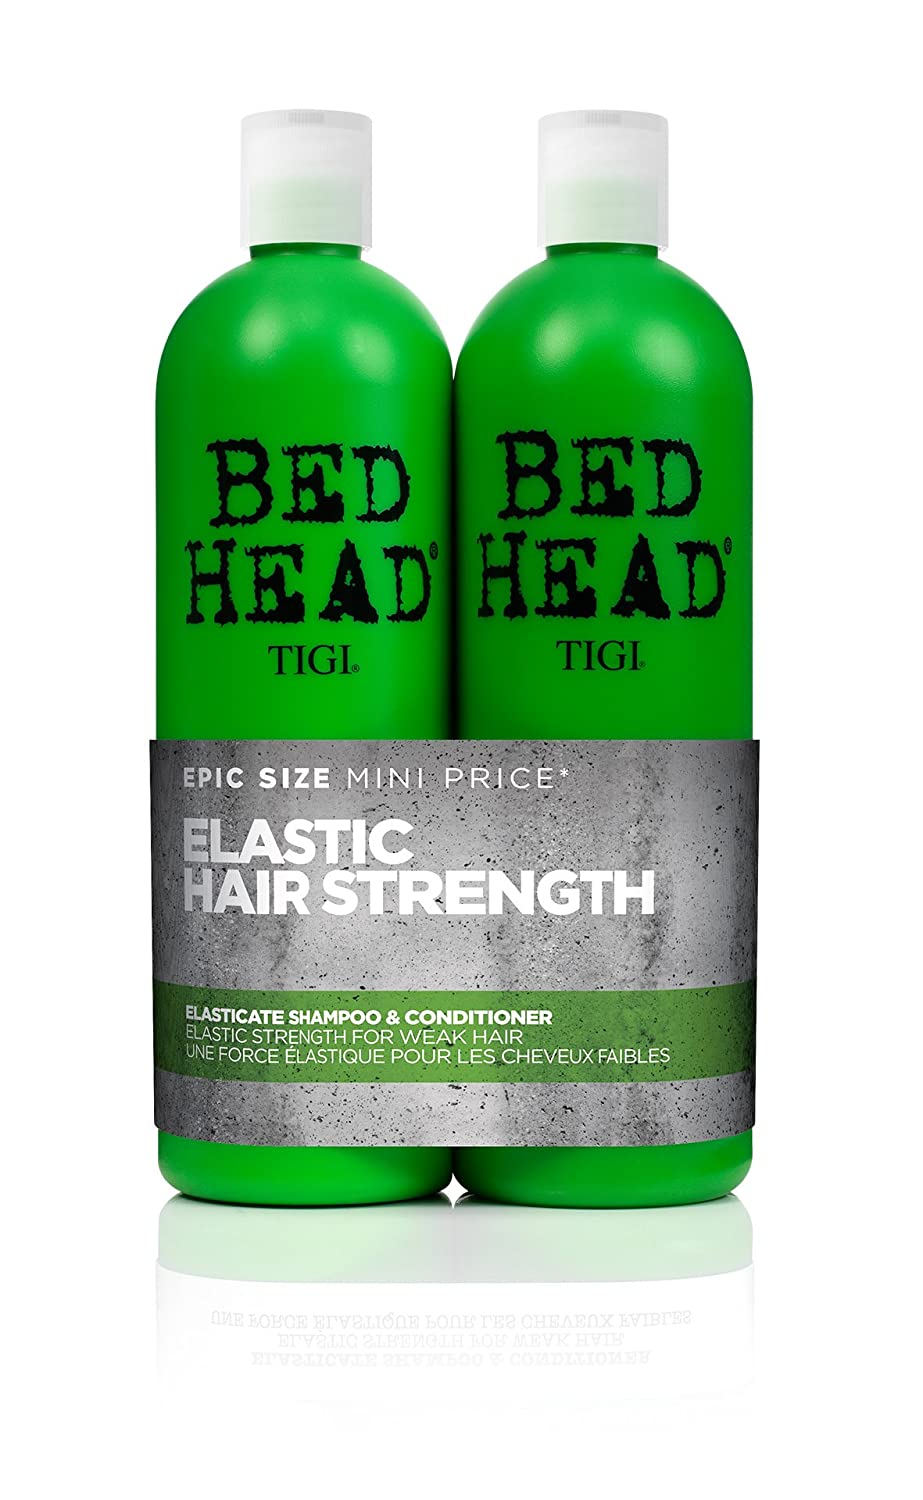 BED HEAD by TIGI Elasticate Tween Duo Strengthening Shampoo and Conditioner for Weak, Damaged Hair Tigi Bed Head NLA125848 ELASTICATETWEENS